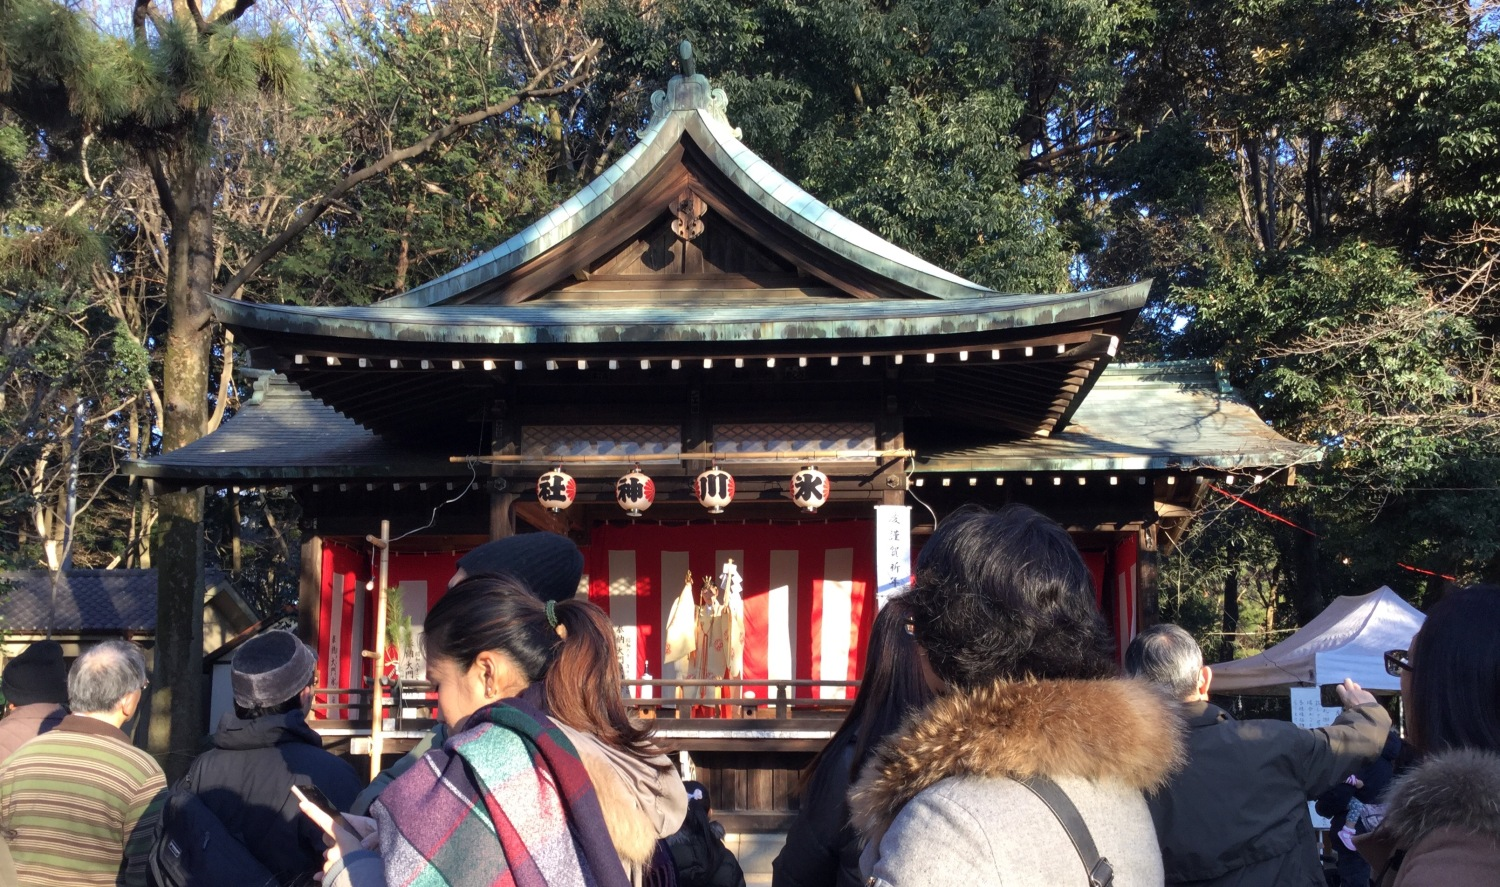 New Year's visit to a Shinto shrine image of Shakujii Hikawa Shrine